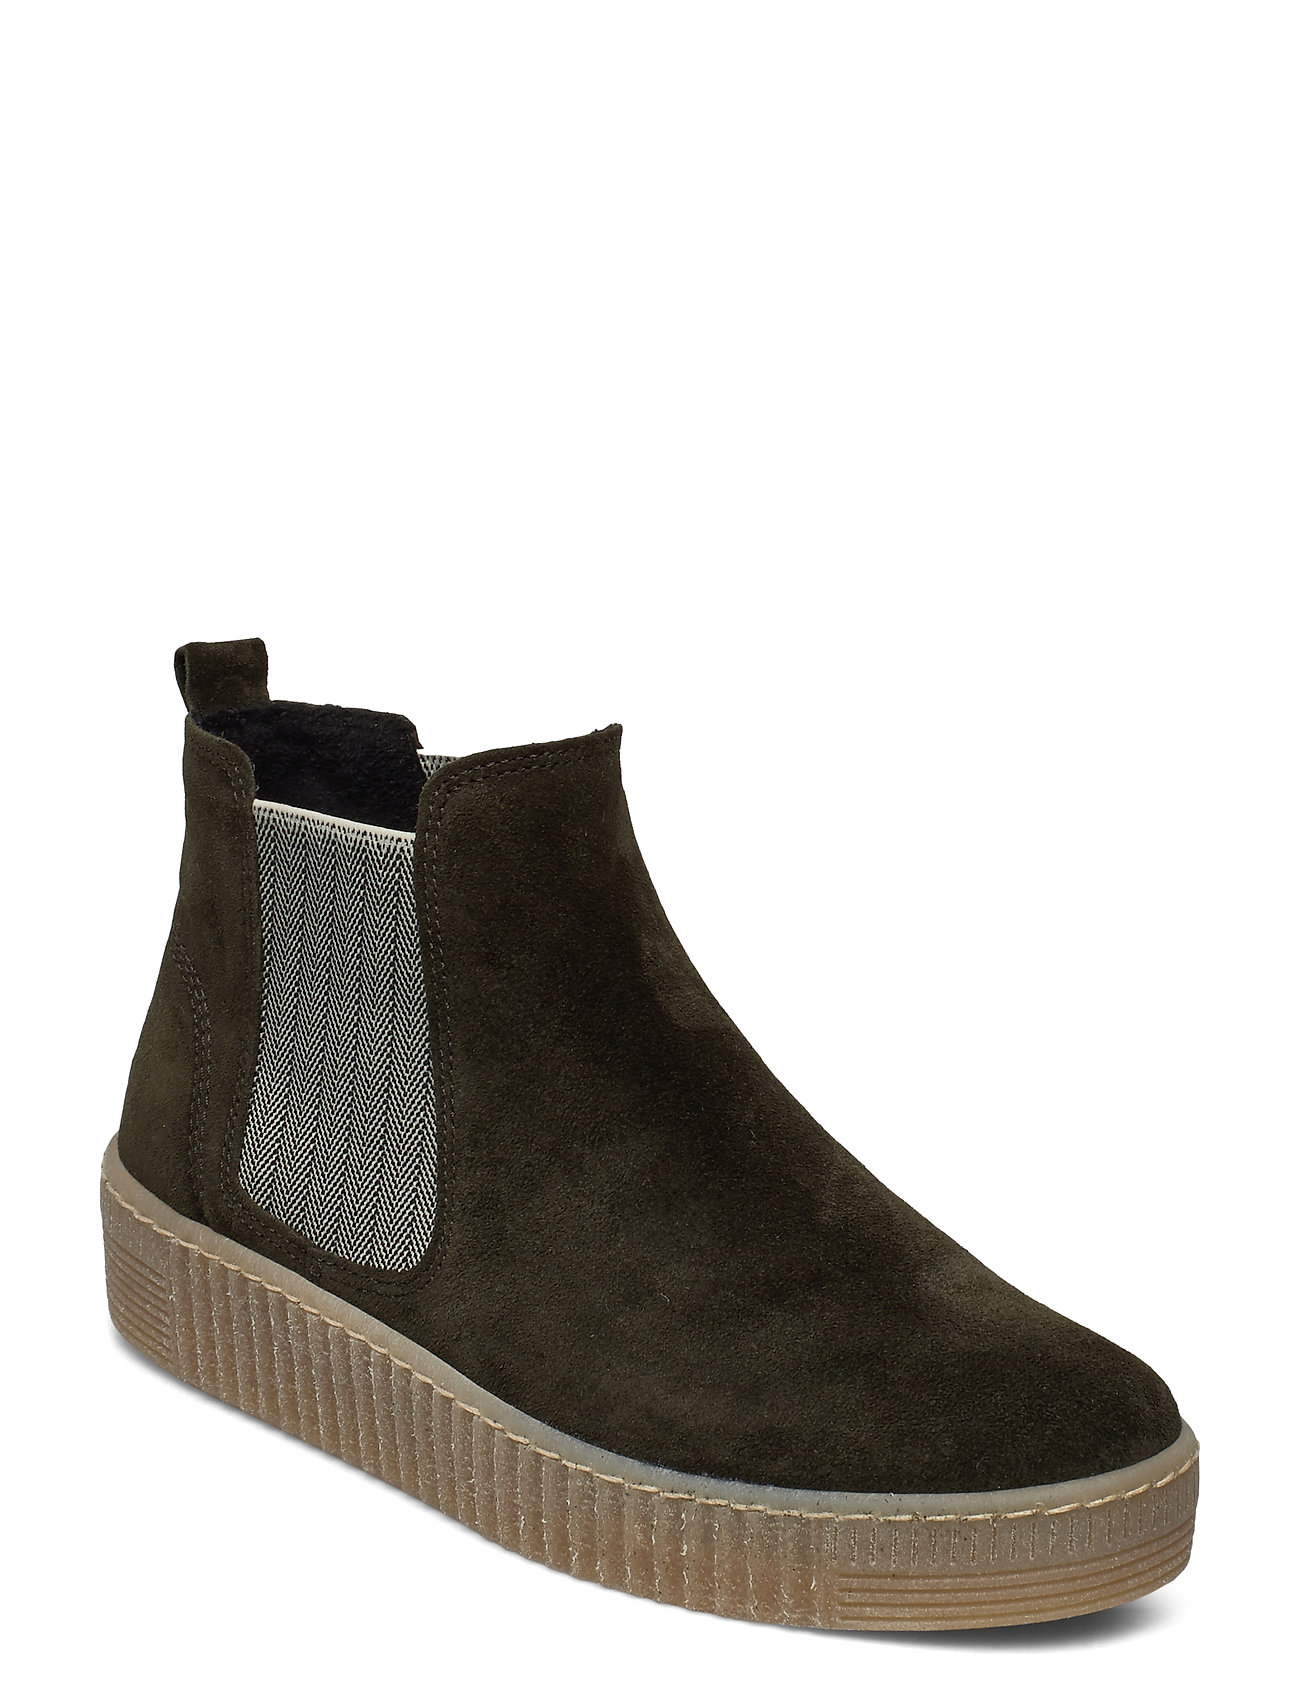 Image of Ankle Boot Shoes Boots Ankle Boots Ankle Boot - Flat Grøn Gabor (3431378109)